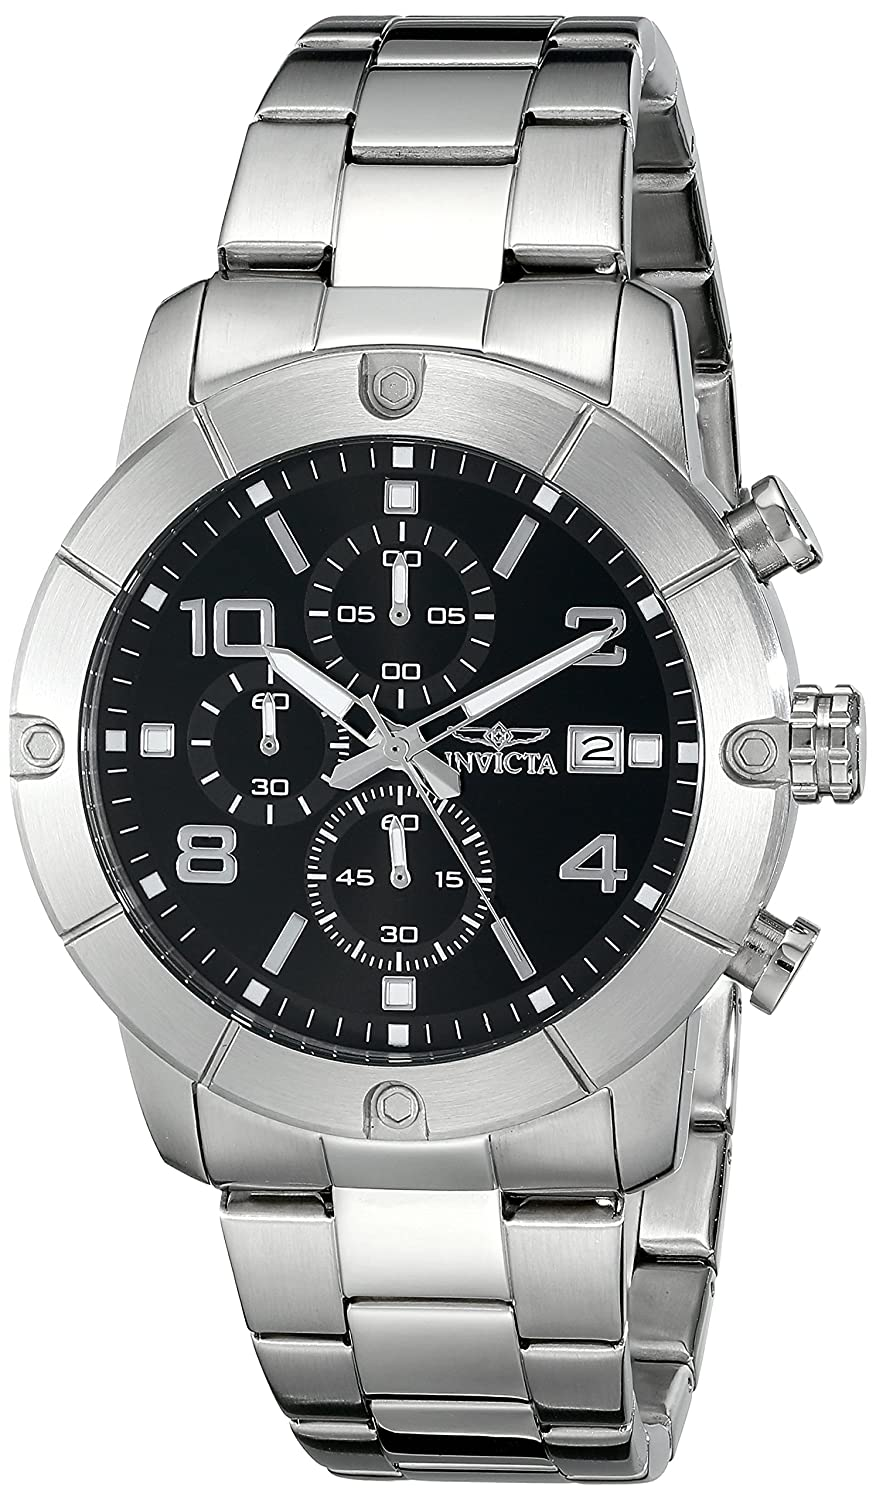 Amazon.com: Invicta Mens 17762 Specialty Analog Display Japanese Quartz Silver Watch: Invicta: Watches